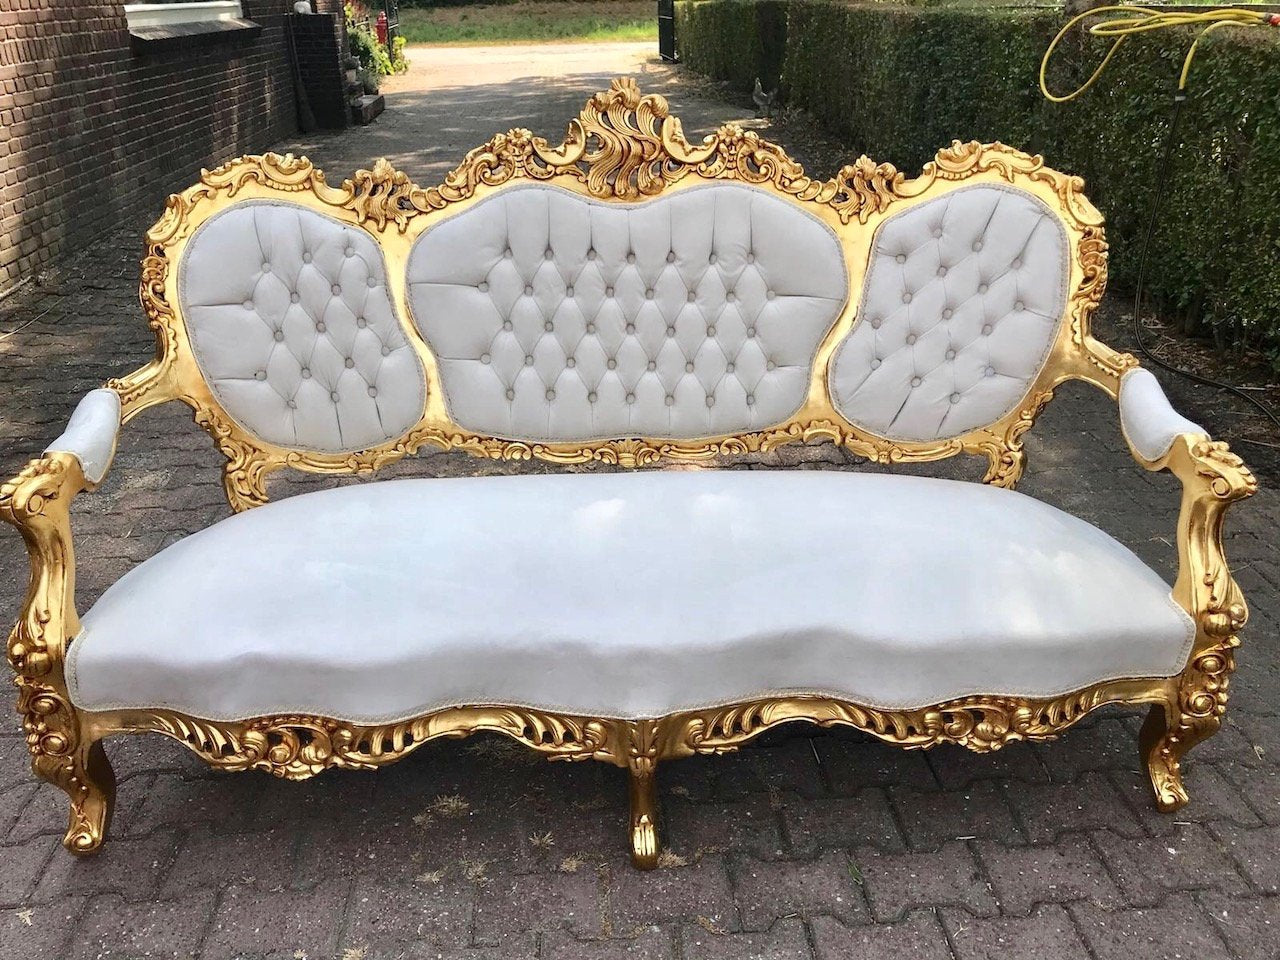 Magnificent French Sofa Louis Xvi Furniture Rococo Chair Antique Settee Evergreenethics Interior Chair Design Evergreenethicsorg